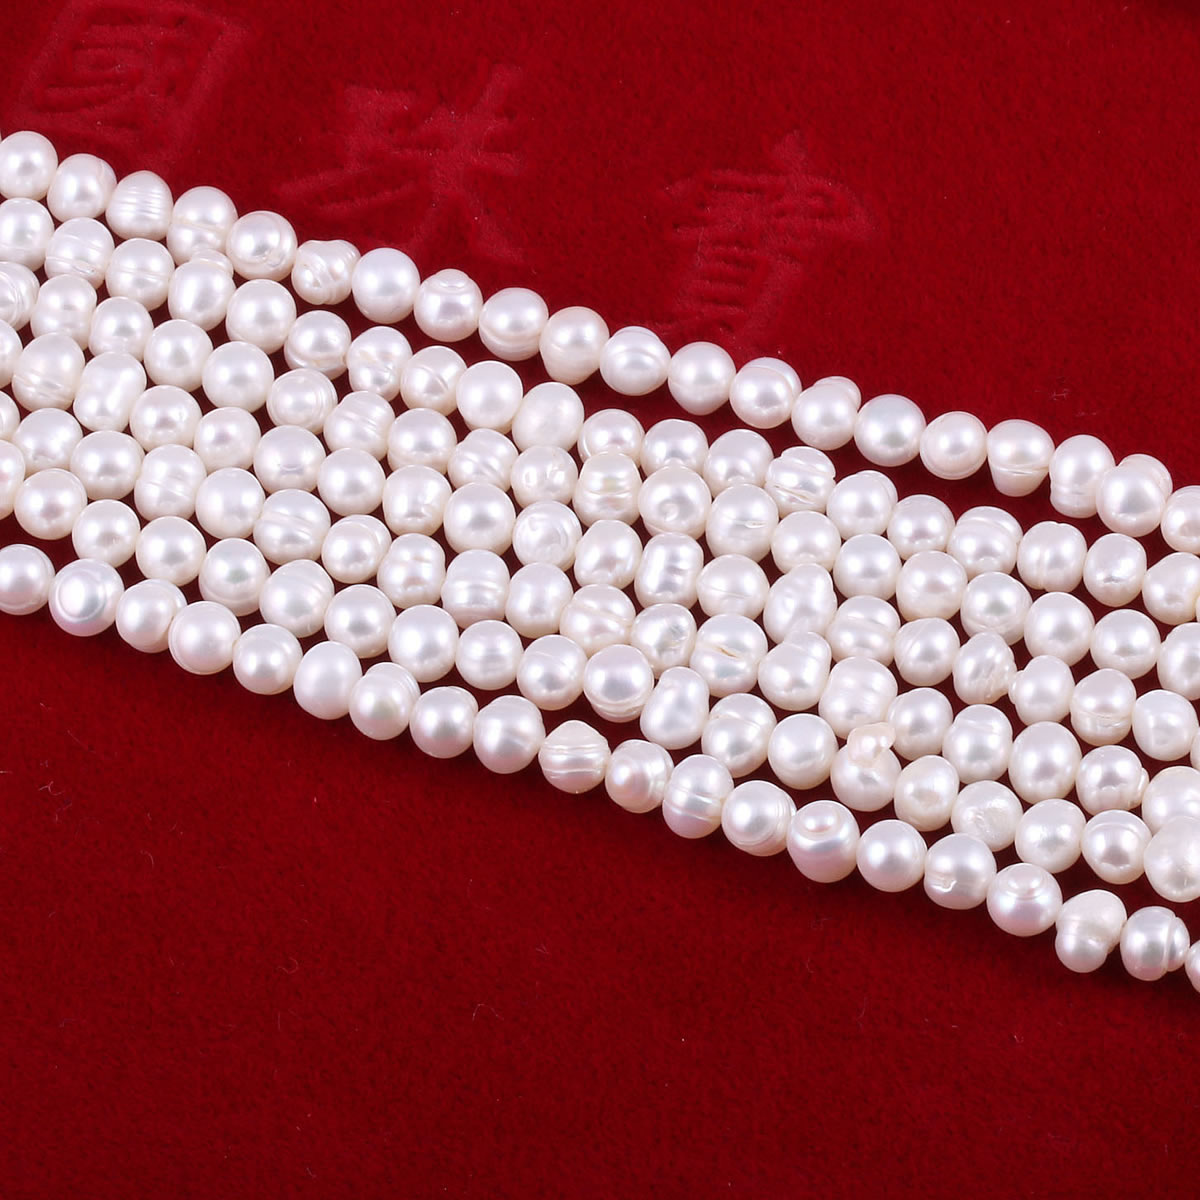 Real Pearl Loose Beads Natural Freshwater Pearls for Women Jewelry Making Bracelet DIY Necklace Accessories 5-6mm  - buy with discount